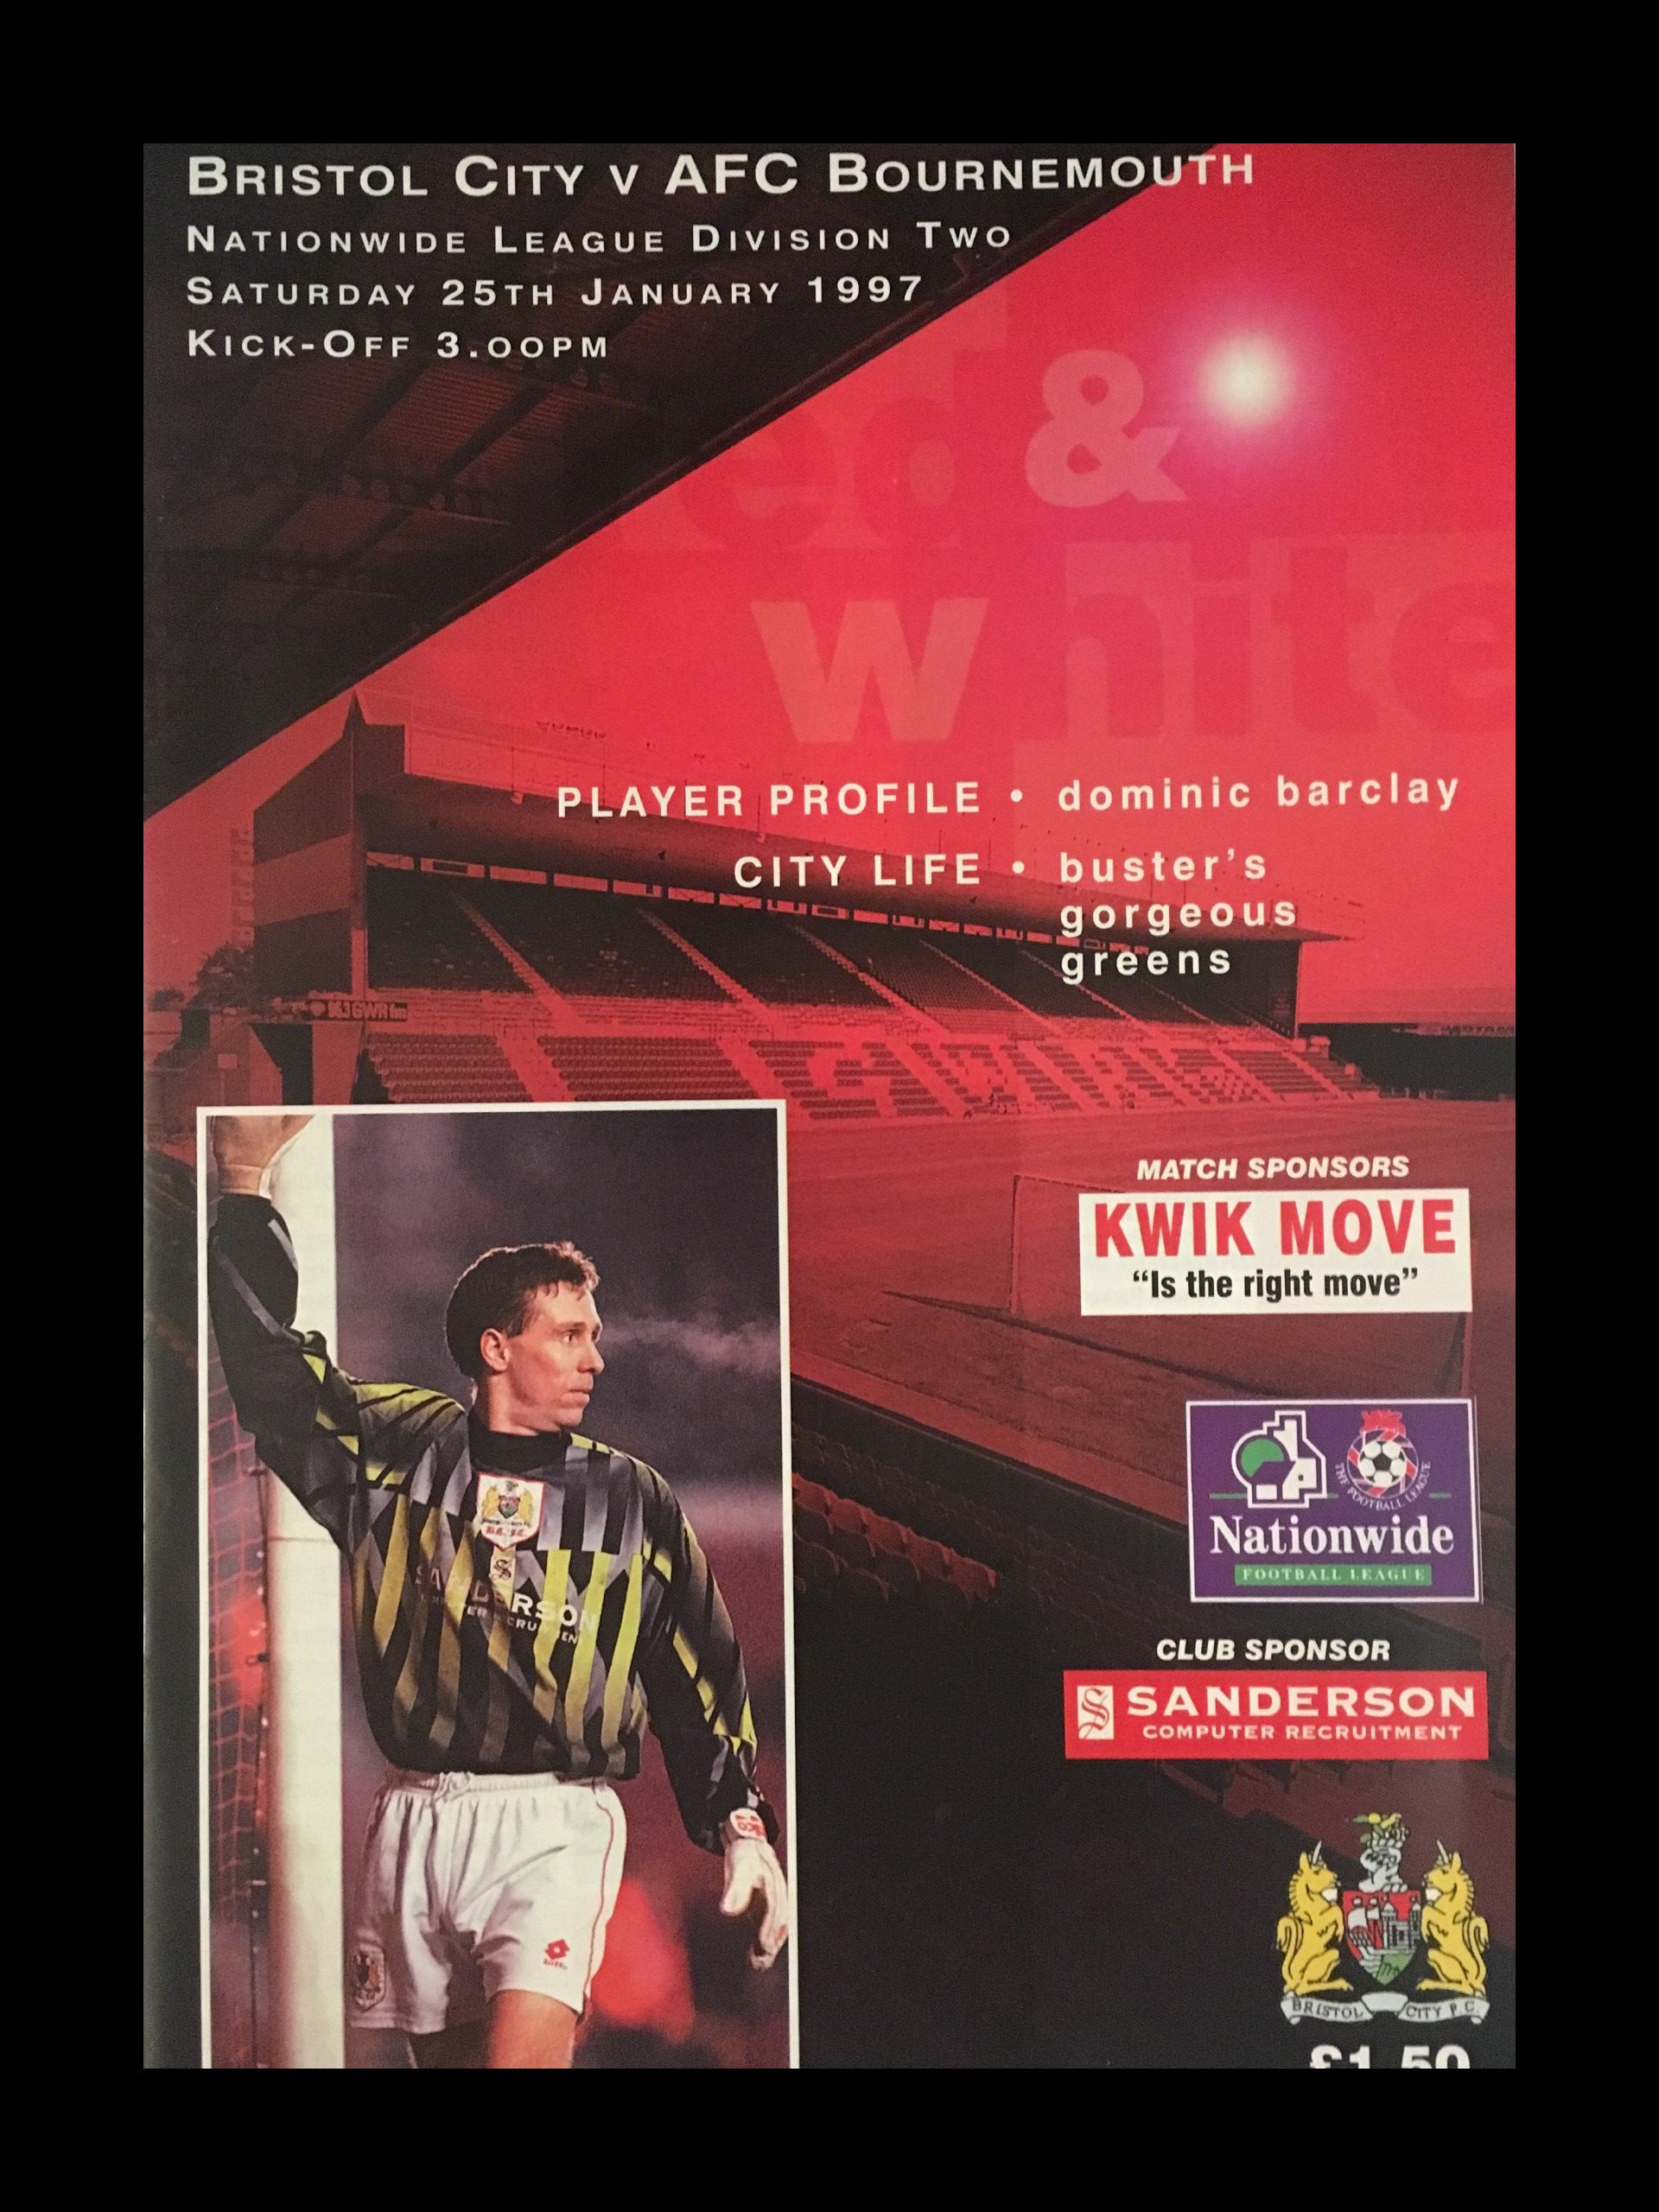 Bristol City v AFC Bournemouth 25-01-1997 Programme